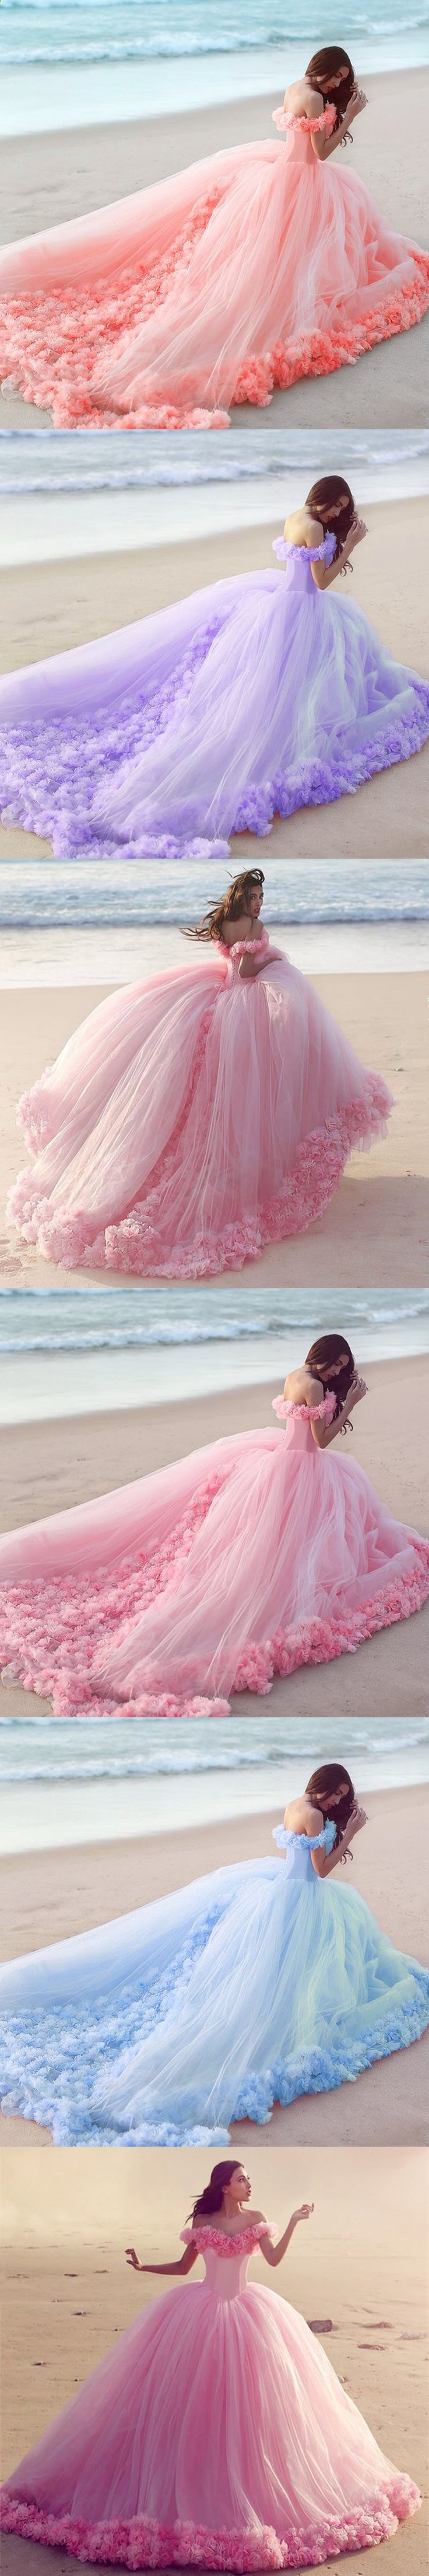 Amazing Ball Gowns Floral Flower Dresses Swing in spring 2017! Available in pink,coral,lilac,lavender ,light blue color as your quinceanera dresses! it will definitely rock your sweet 16 party on the big days.it might also being used as the wedding photography dresses for all bride,